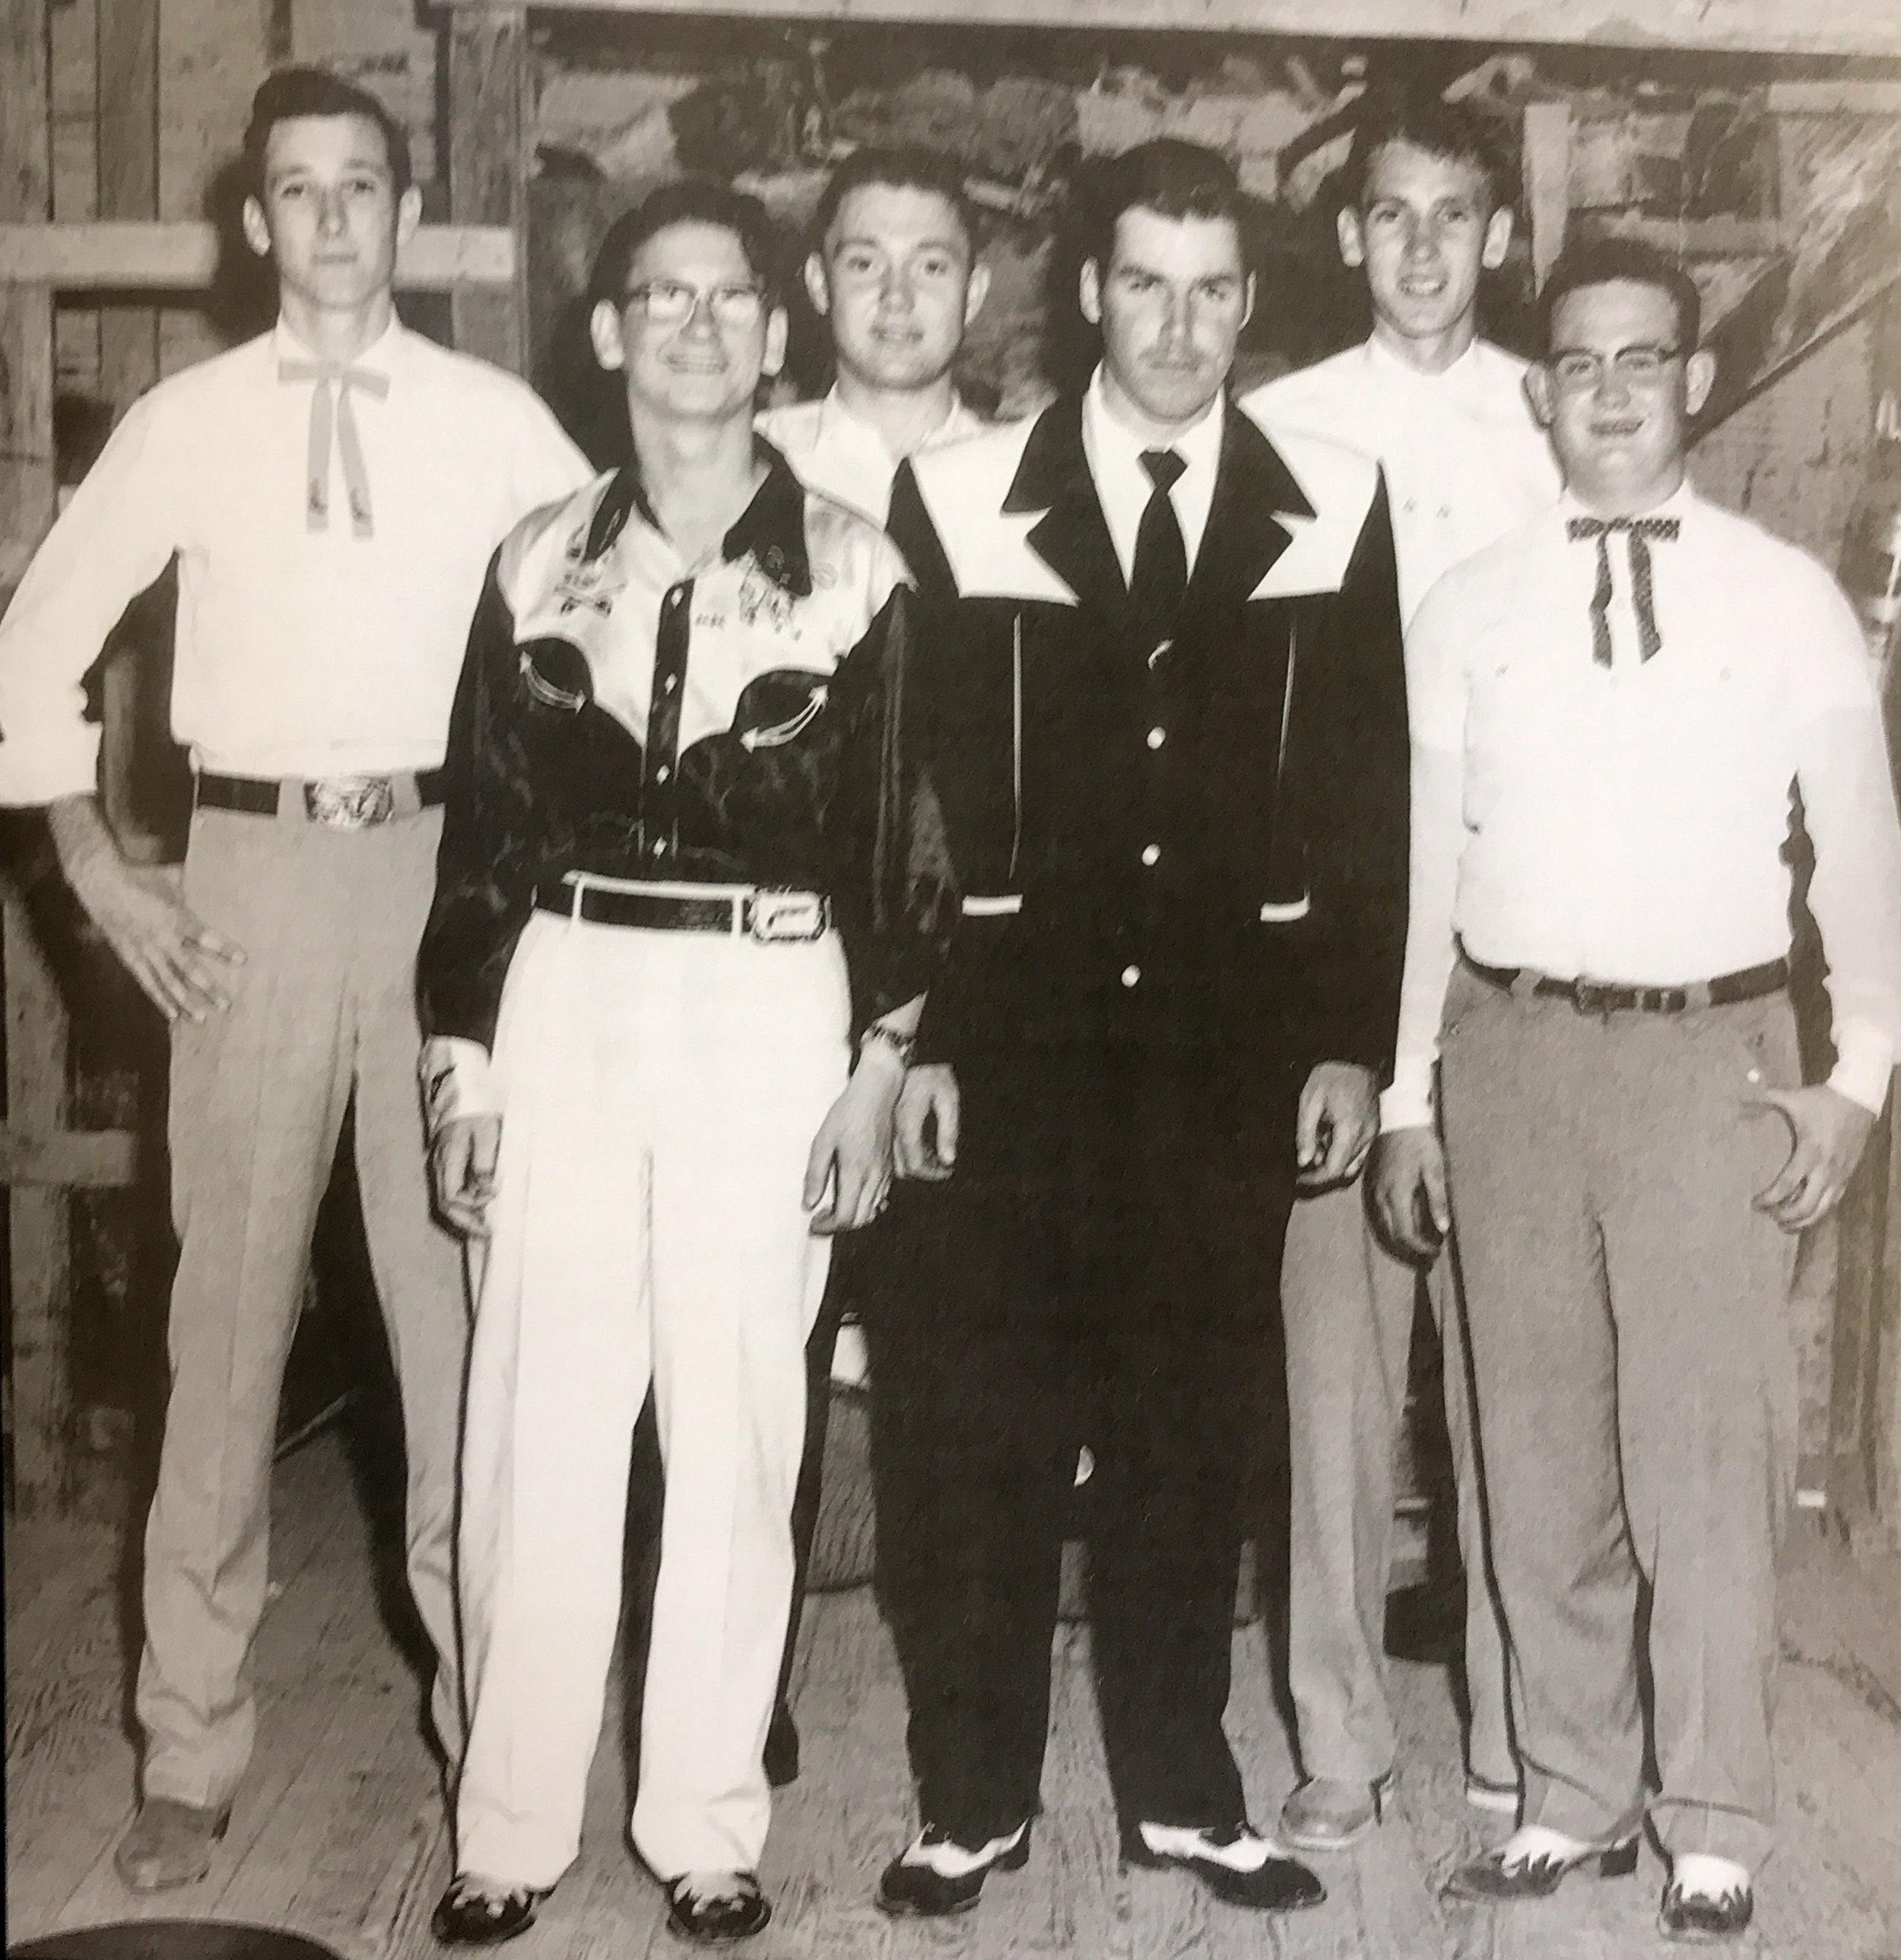 Roy is second from the left